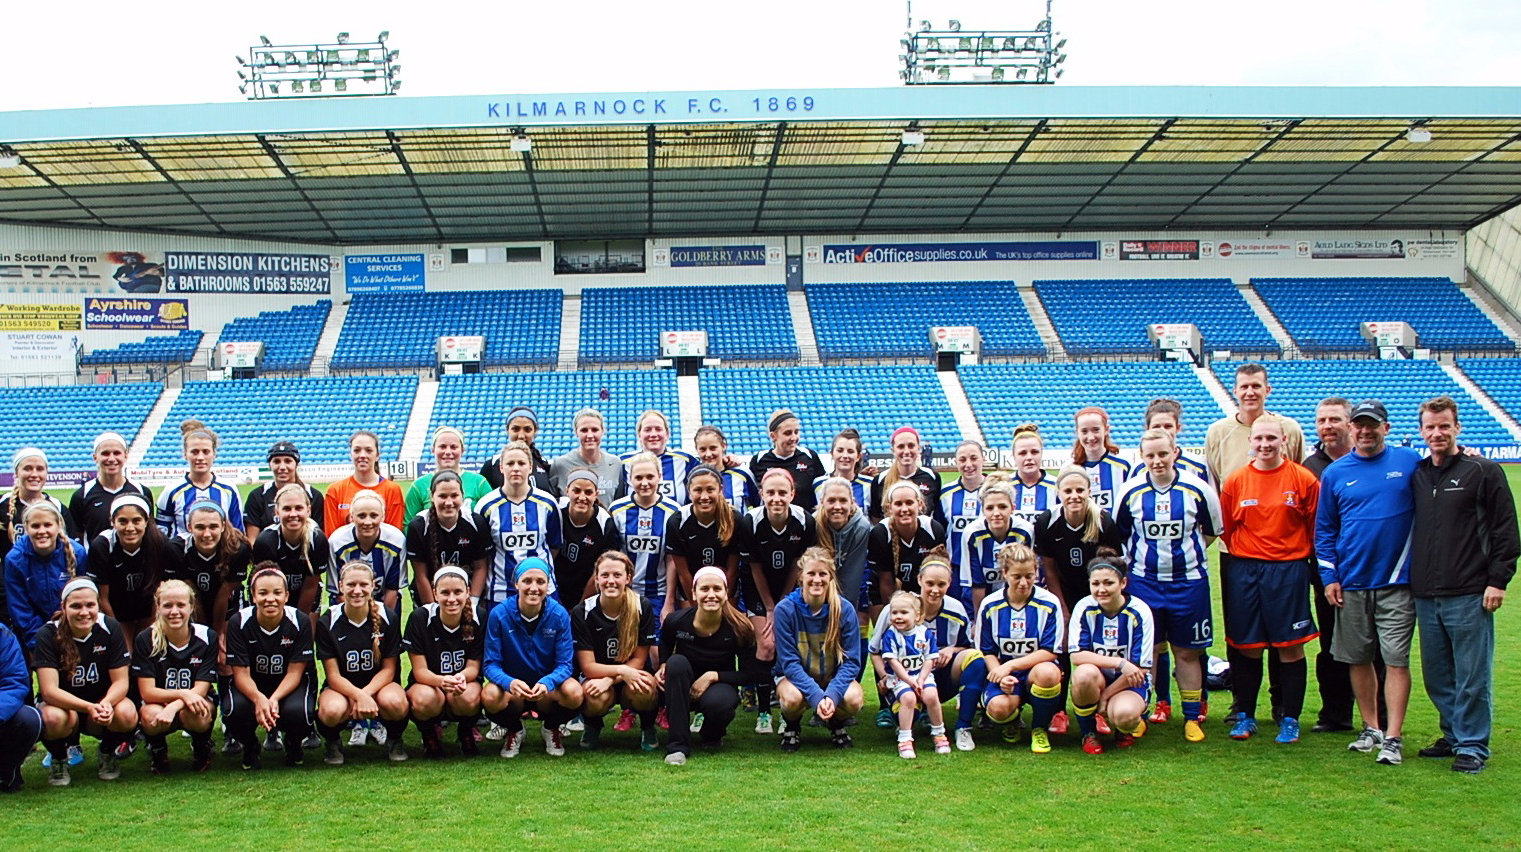 Tulsa ladies v Killie ladies at Rugby park